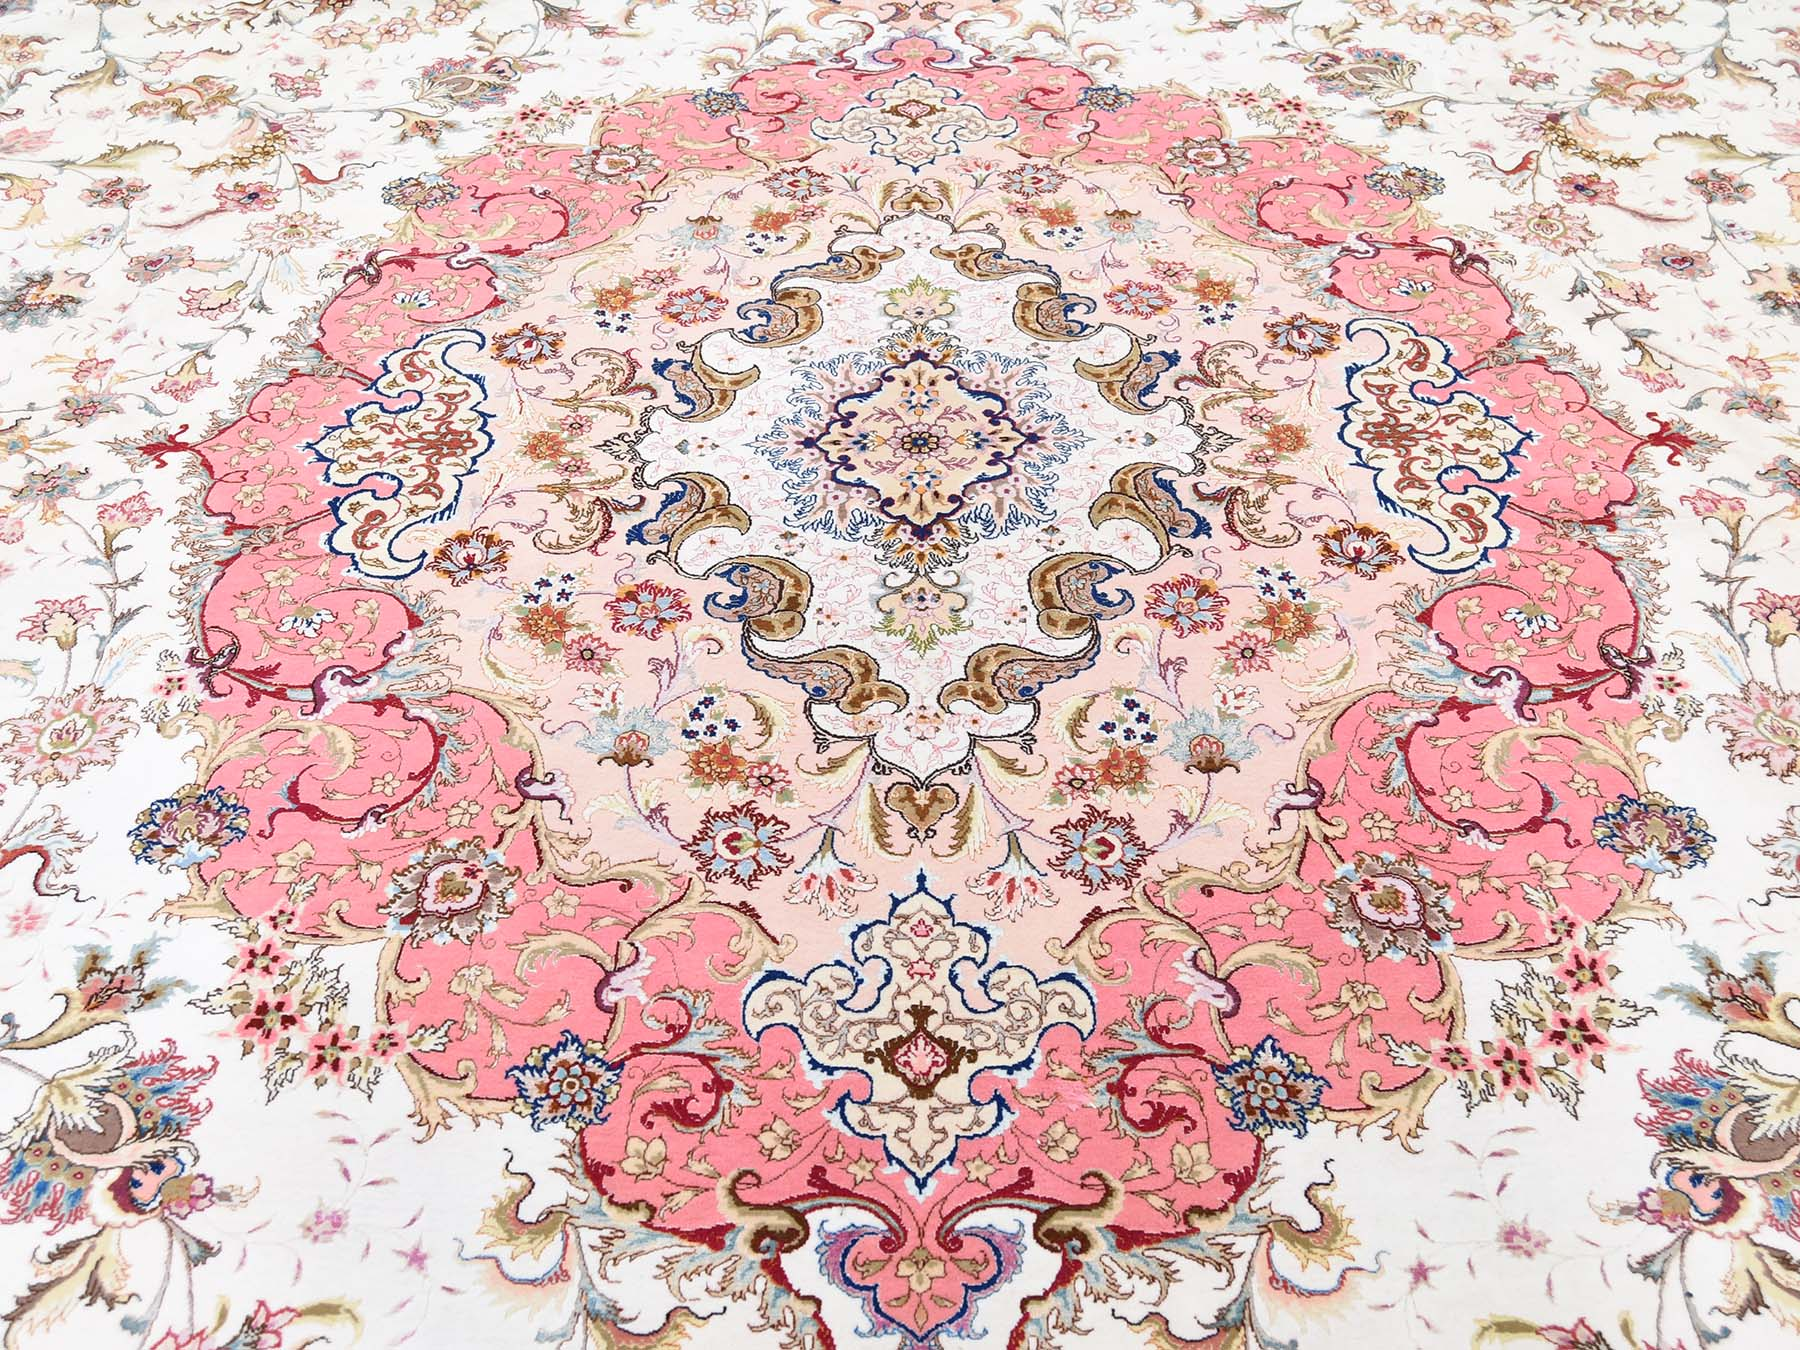 Shah exquisite detail of 400 kpsi 13'x20' Persian Tabriz Wool And Silk Hand-Knotted